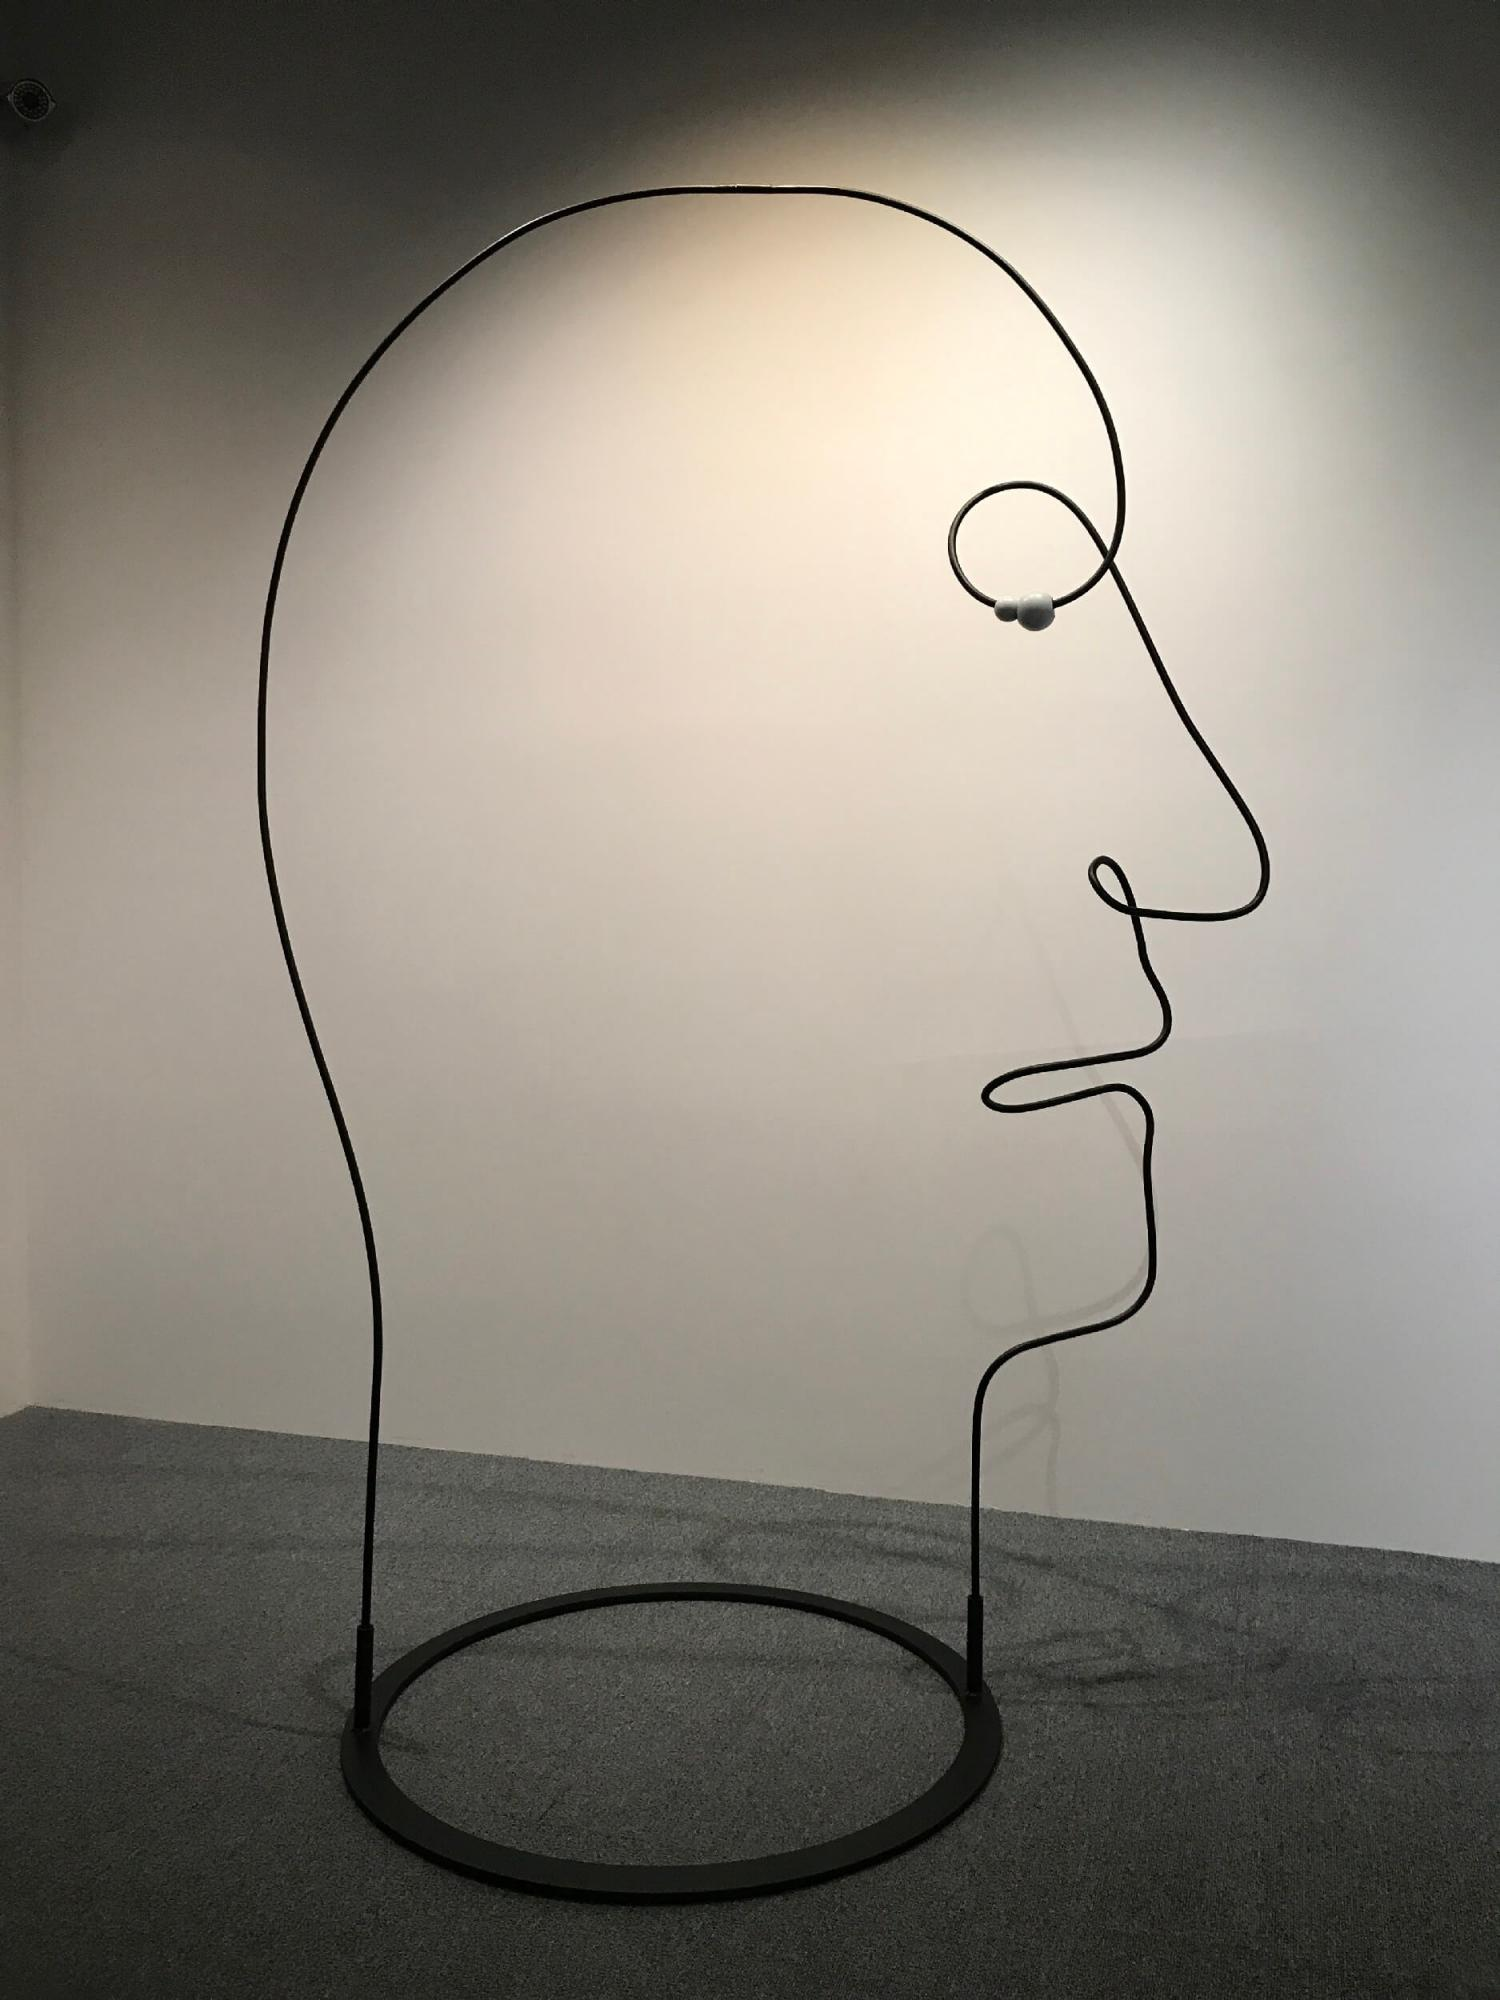 Face 臉的輪廓 NO Sooncheon 盧淳天 (South Korea, 1981-) Steel, Wood 鐵、木 170 x 110 x 75 cm 2018